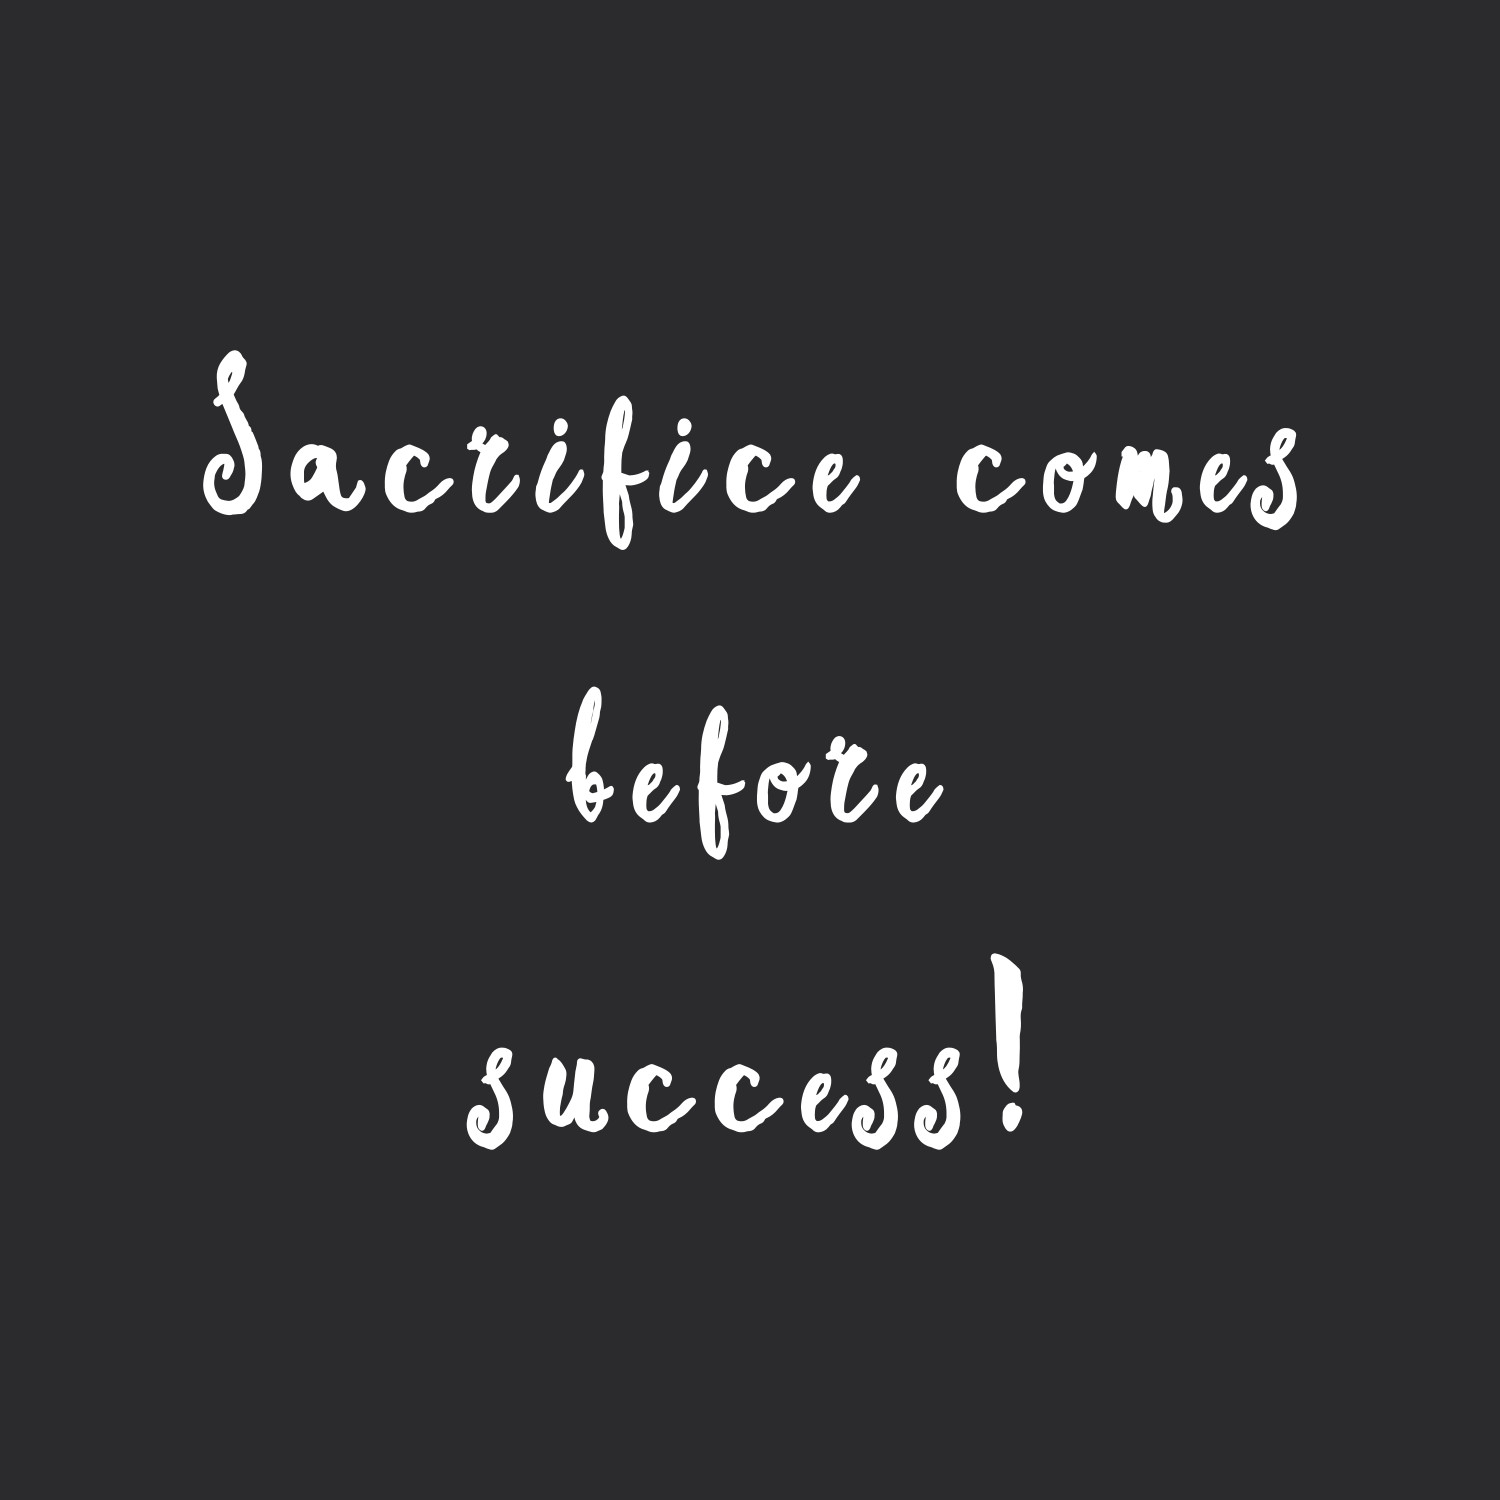 Sacrifice before success! Browse our collection of motivational exercise and healthy eating quotes and get instant weight loss and fitness inspiration. Stay focused and get fit, healthy and happy! https://www.spotebi.com/workout-motivation/sacrifice-before-success/